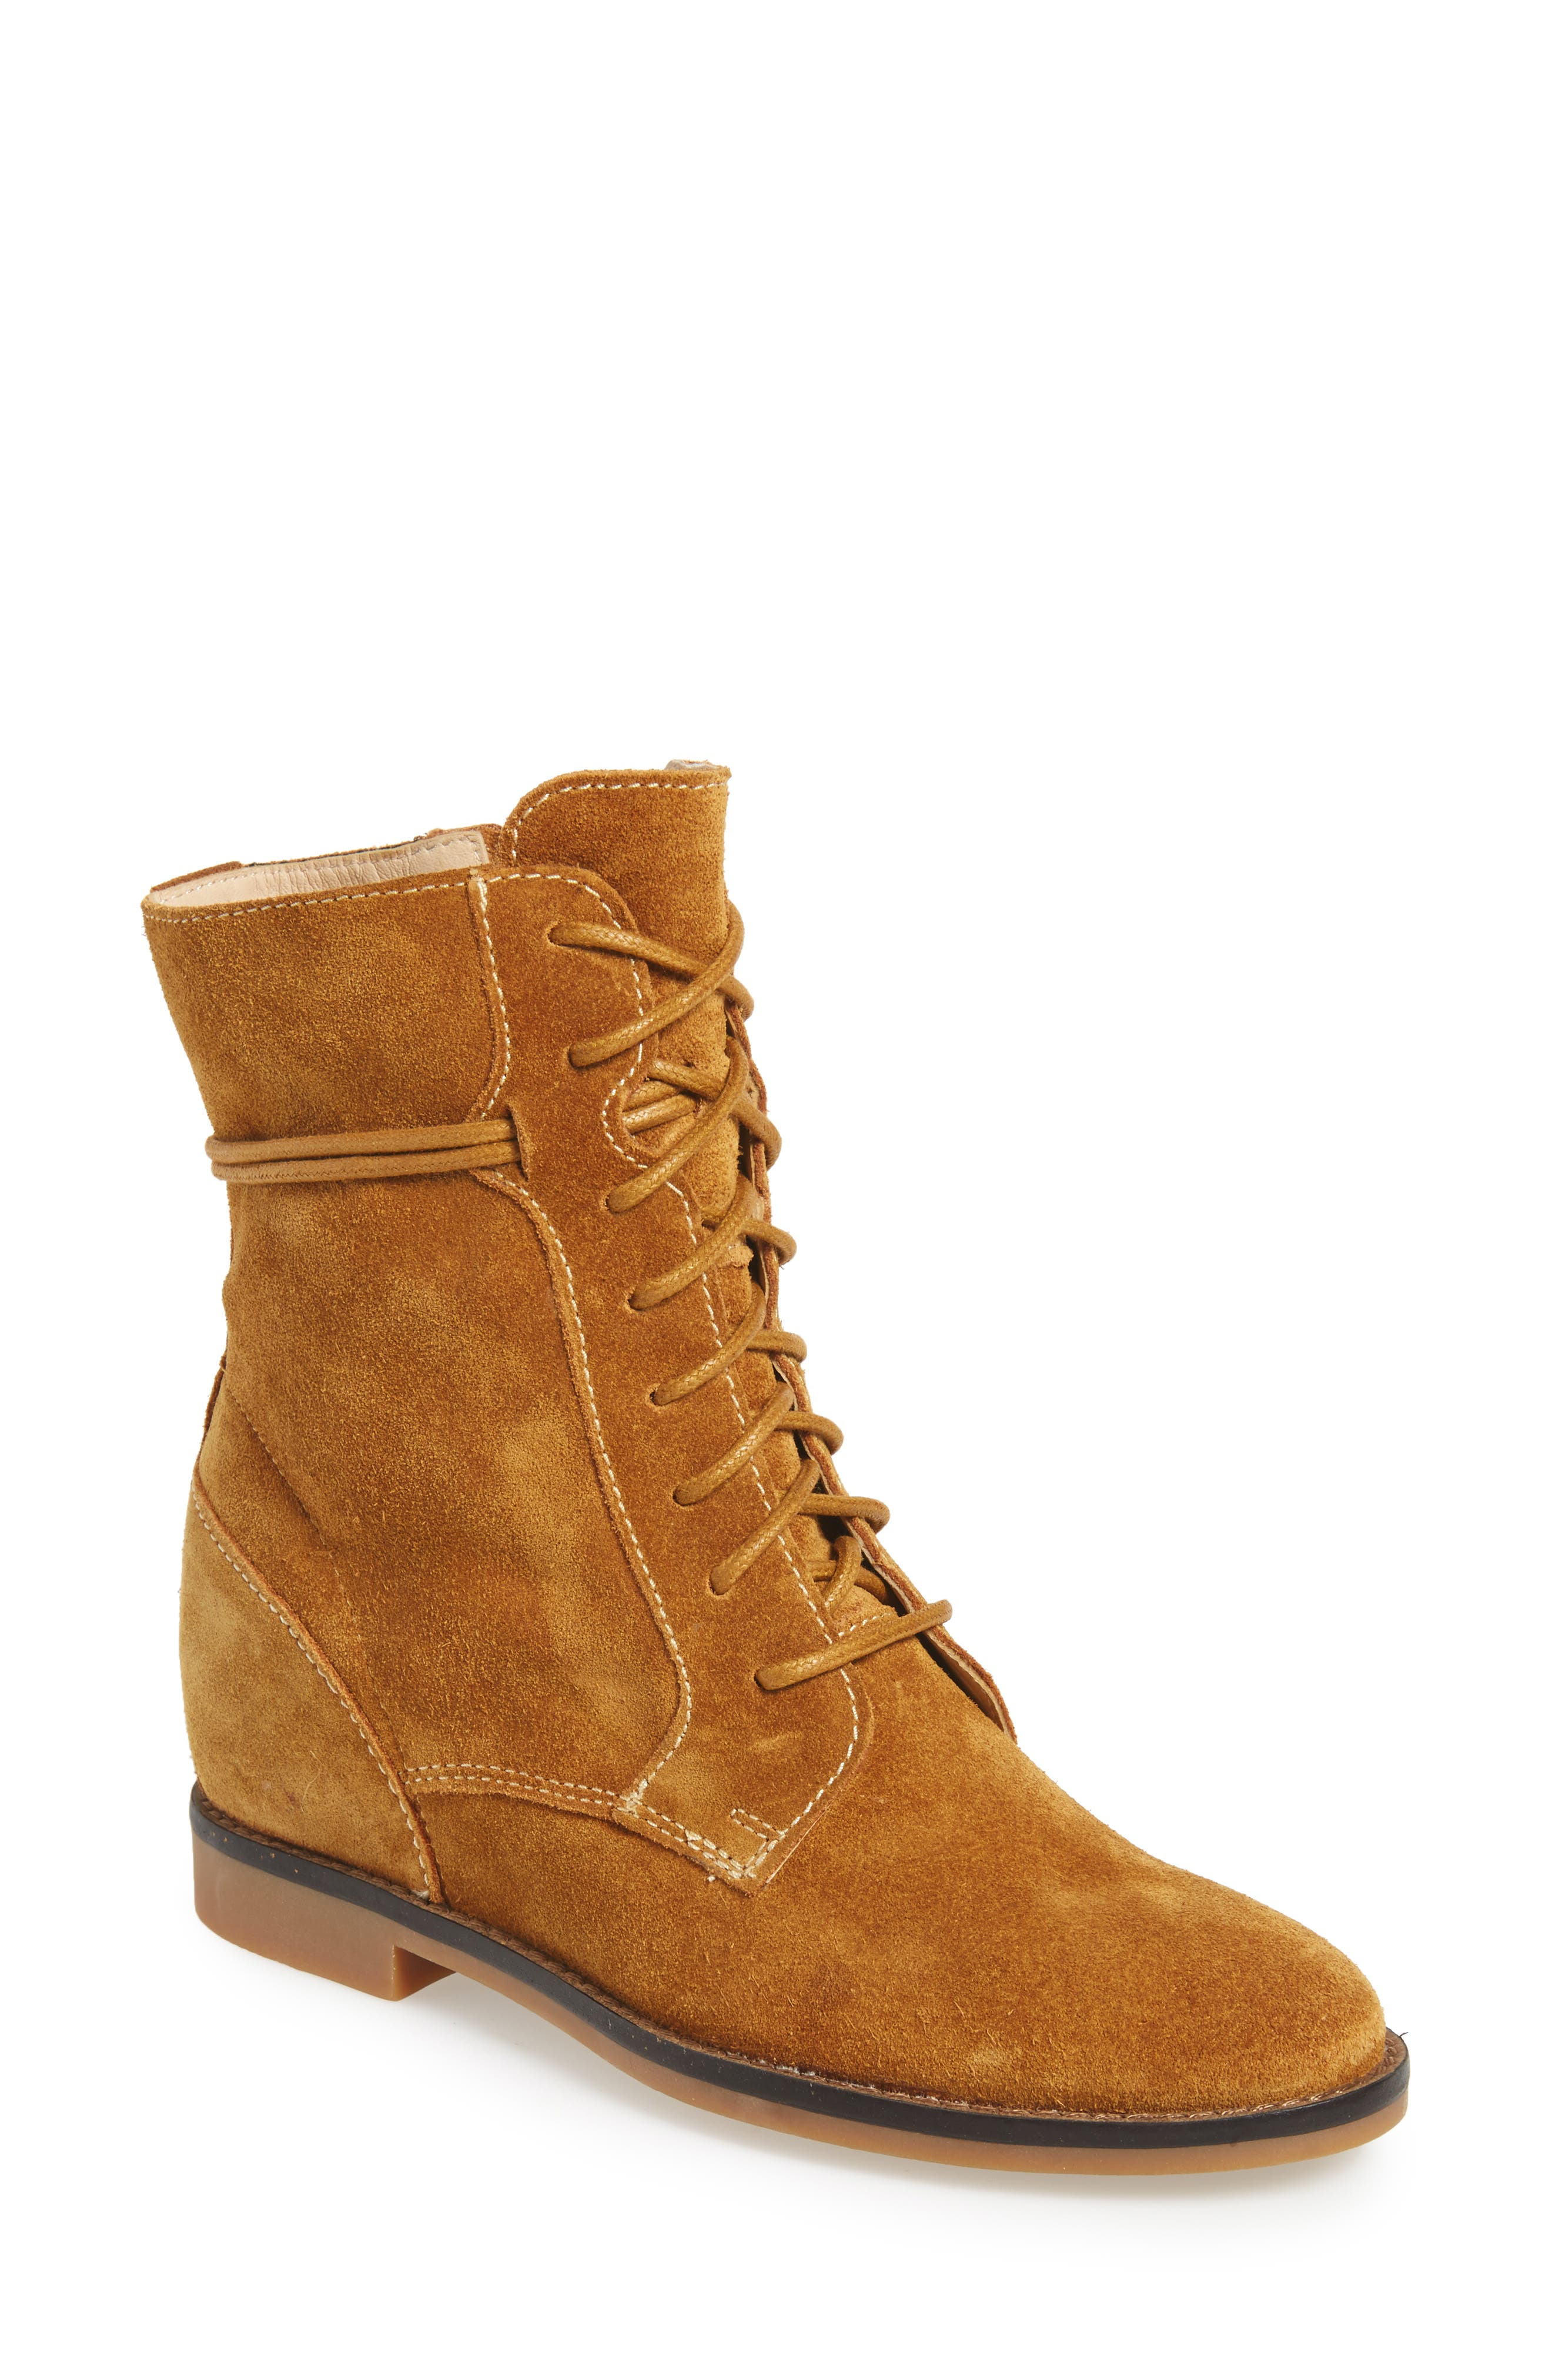 Bab Felise Boot,                         Main,                         color, Camel Suede